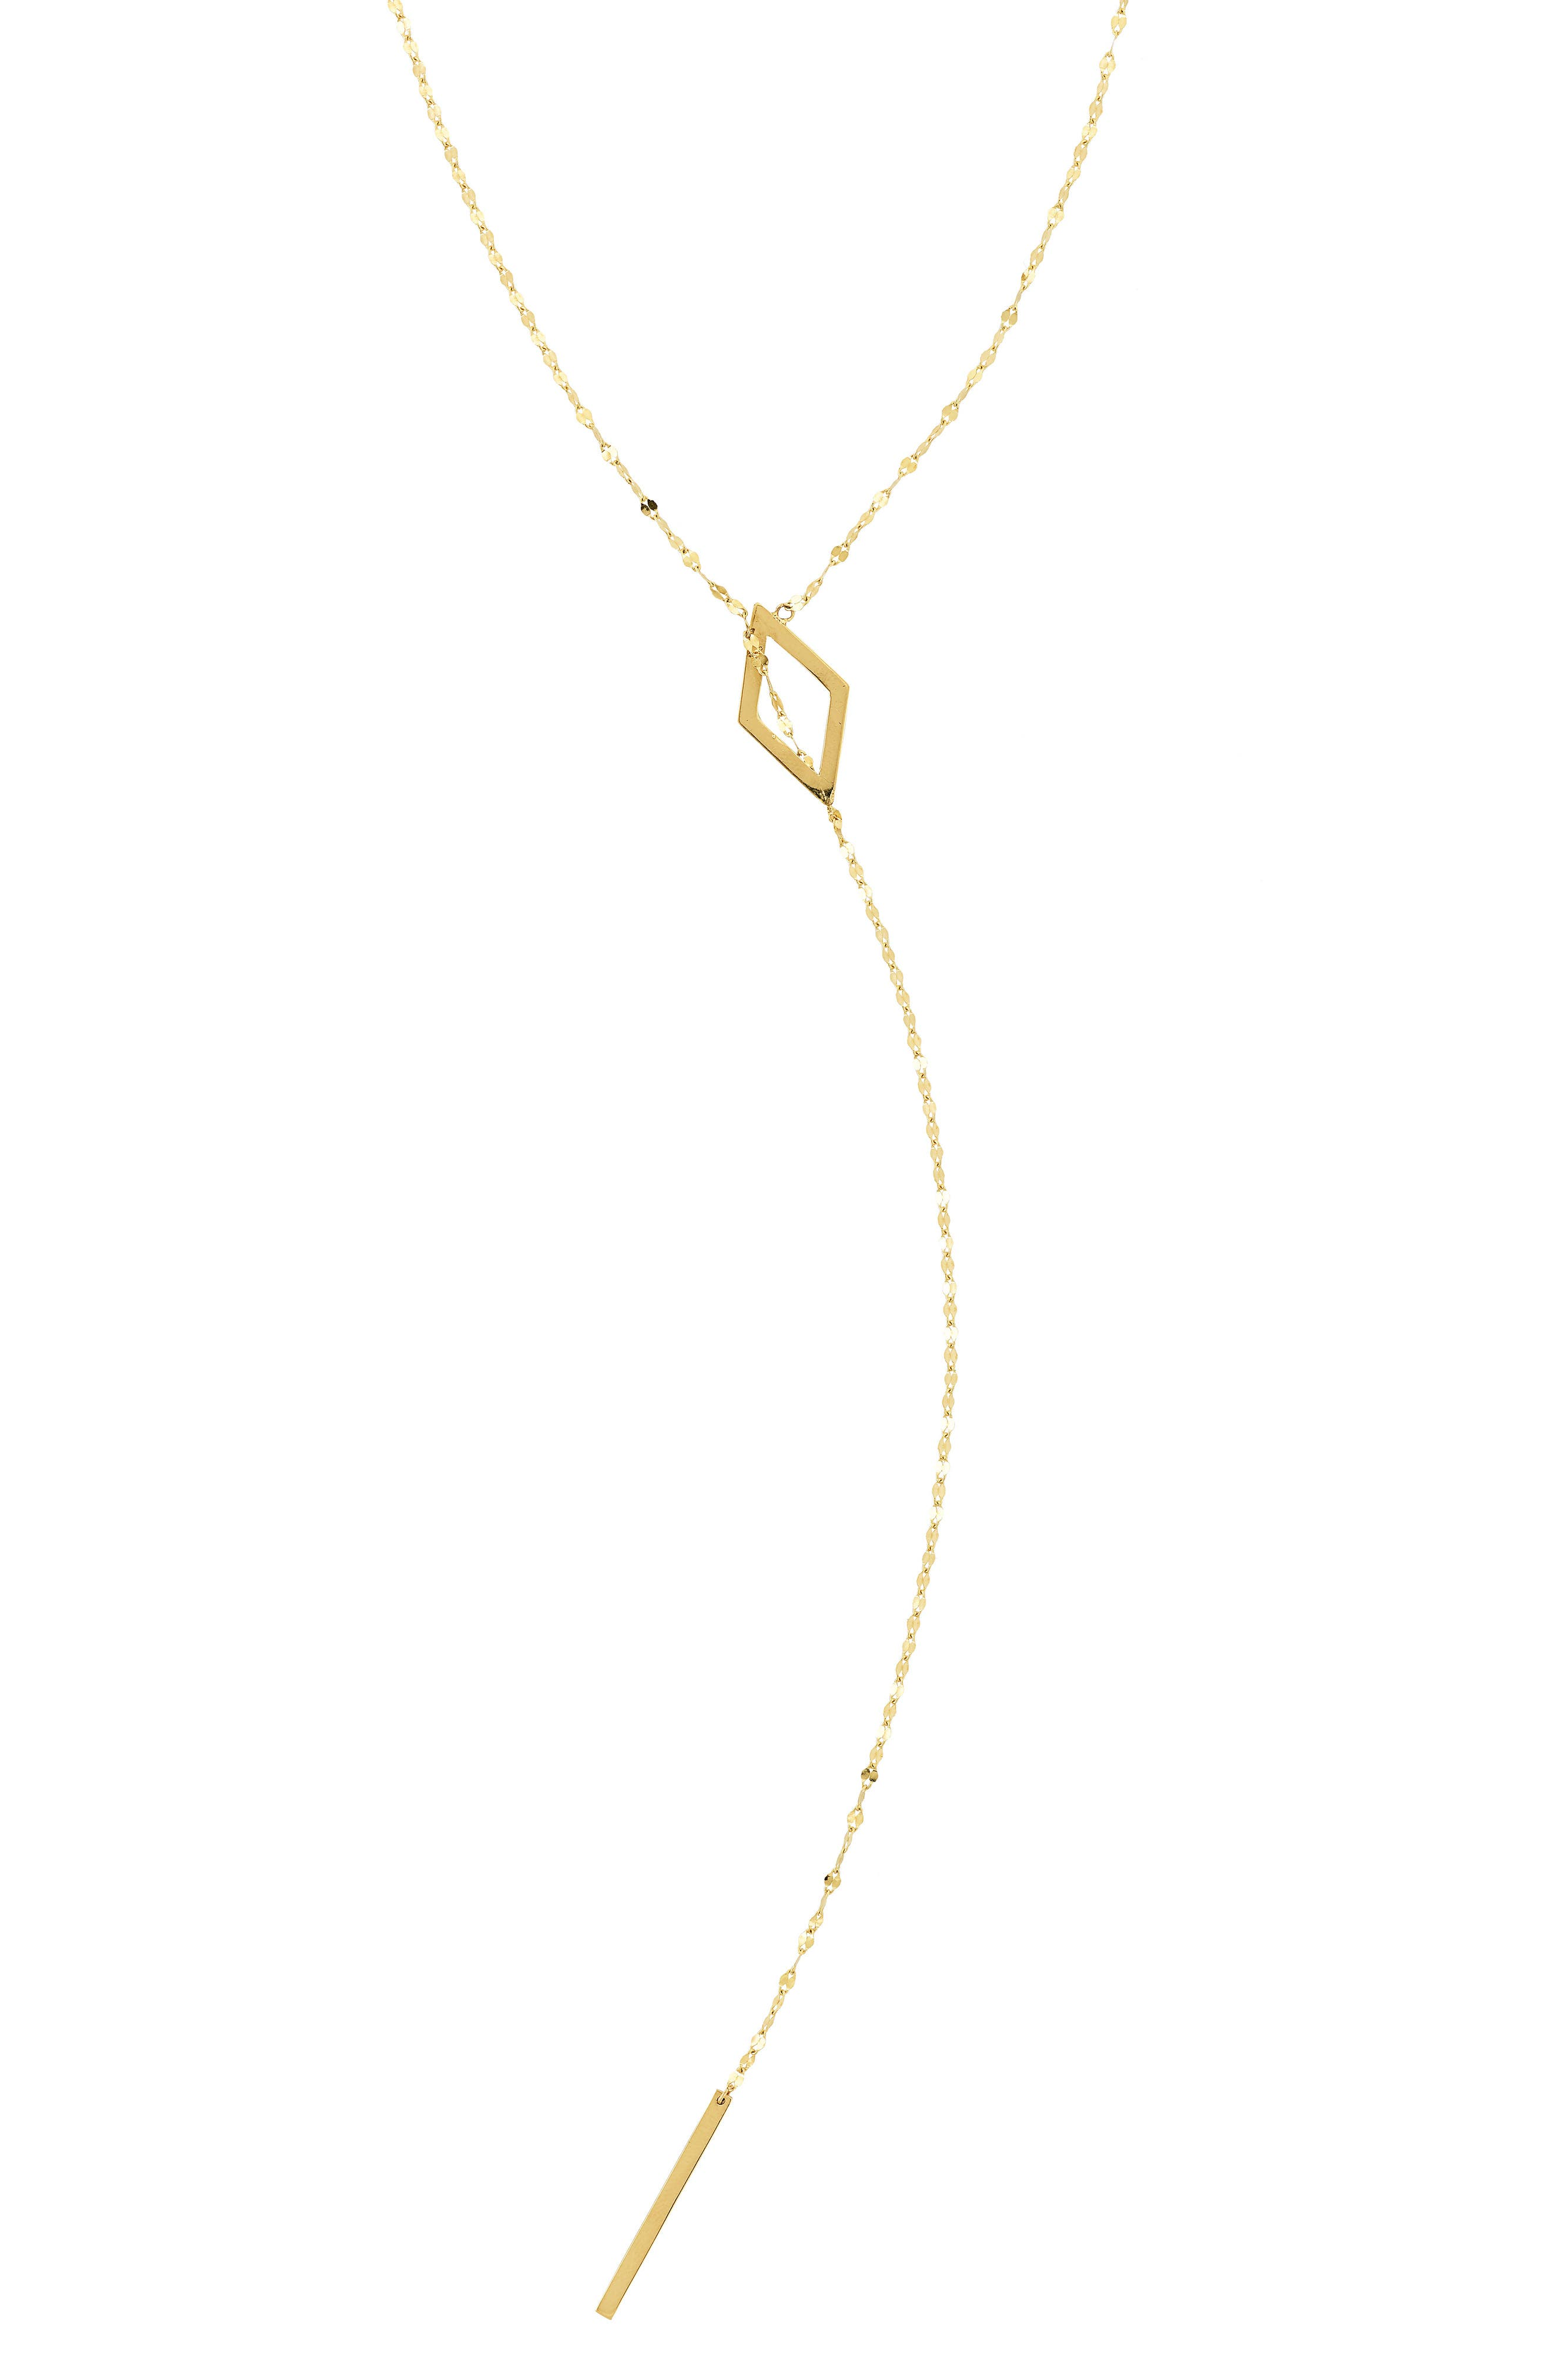 Lariat Necklace,                             Main thumbnail 1, color,                             Yellow Gold